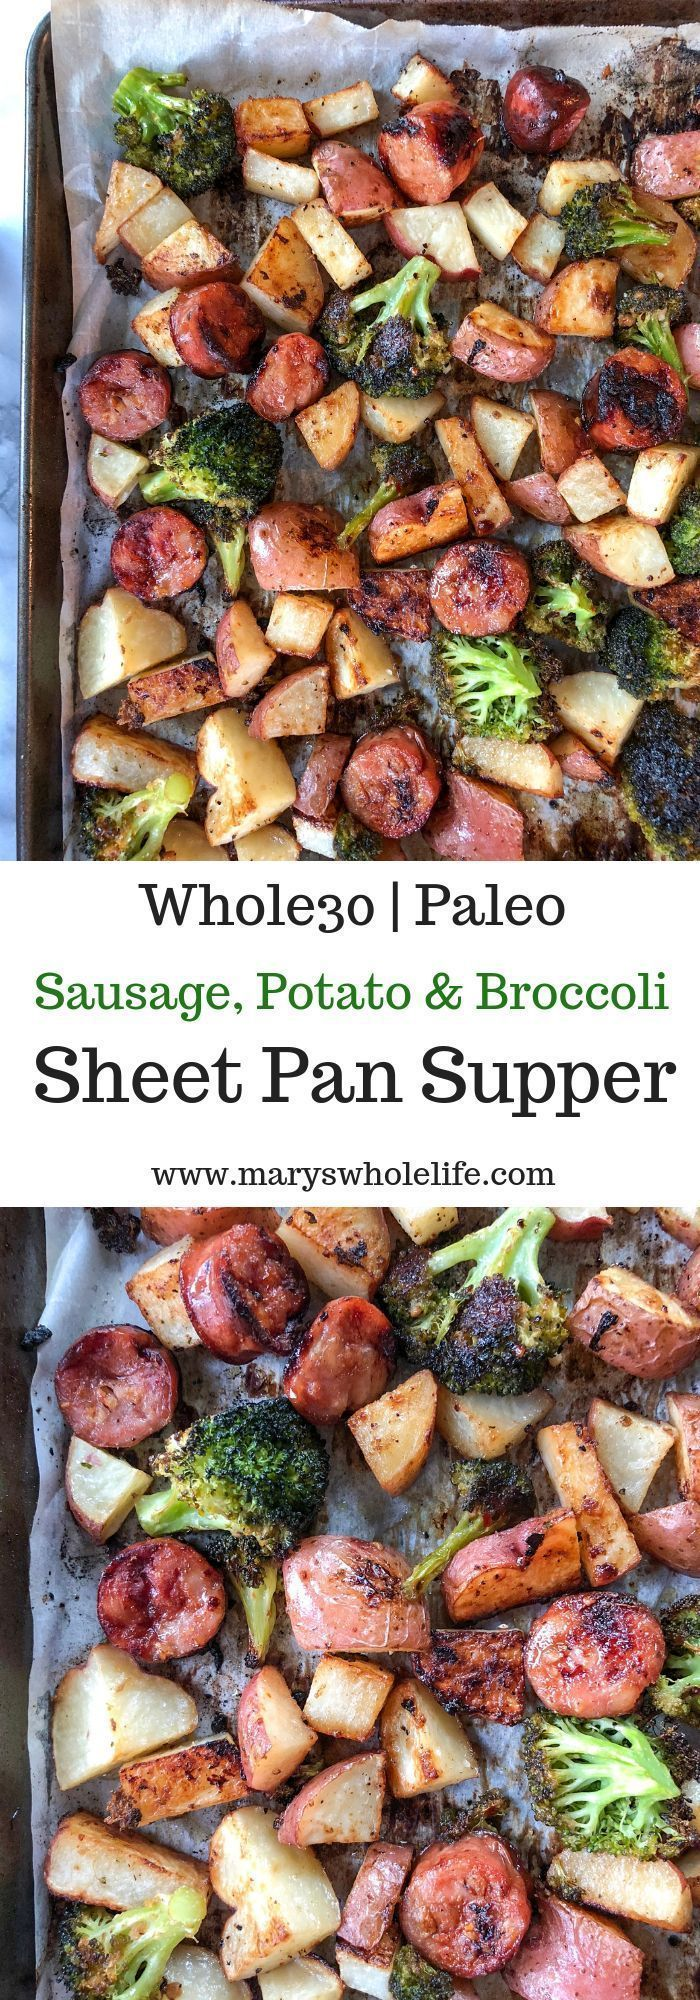 Whole30 + Paleo Sheet Pan Dinner